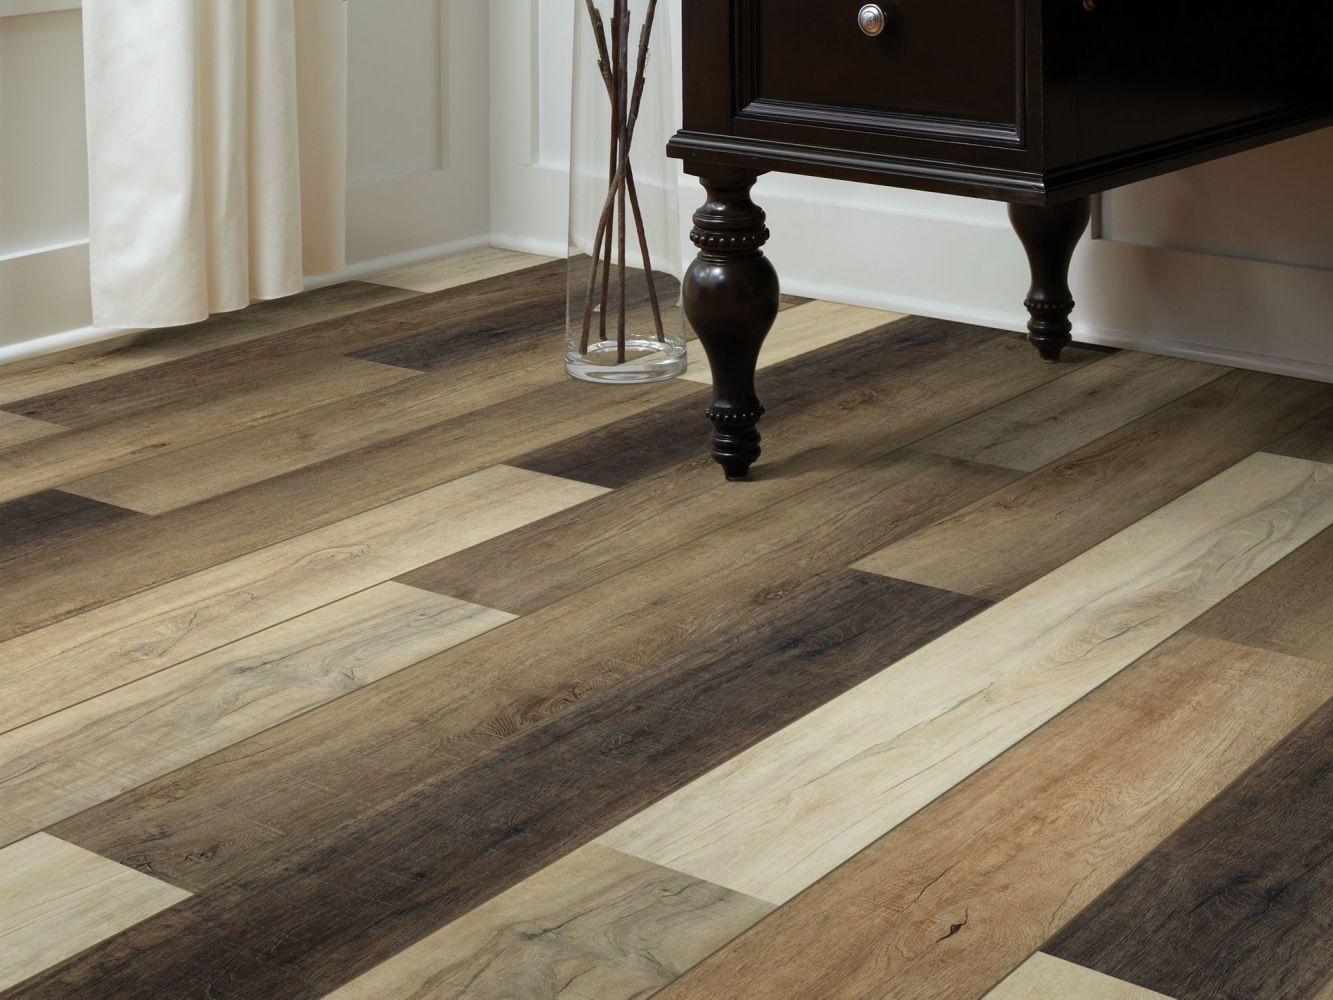 Shaw Floors Resilient Property Solutions Stature Plus Warm Brown 00249_VE371